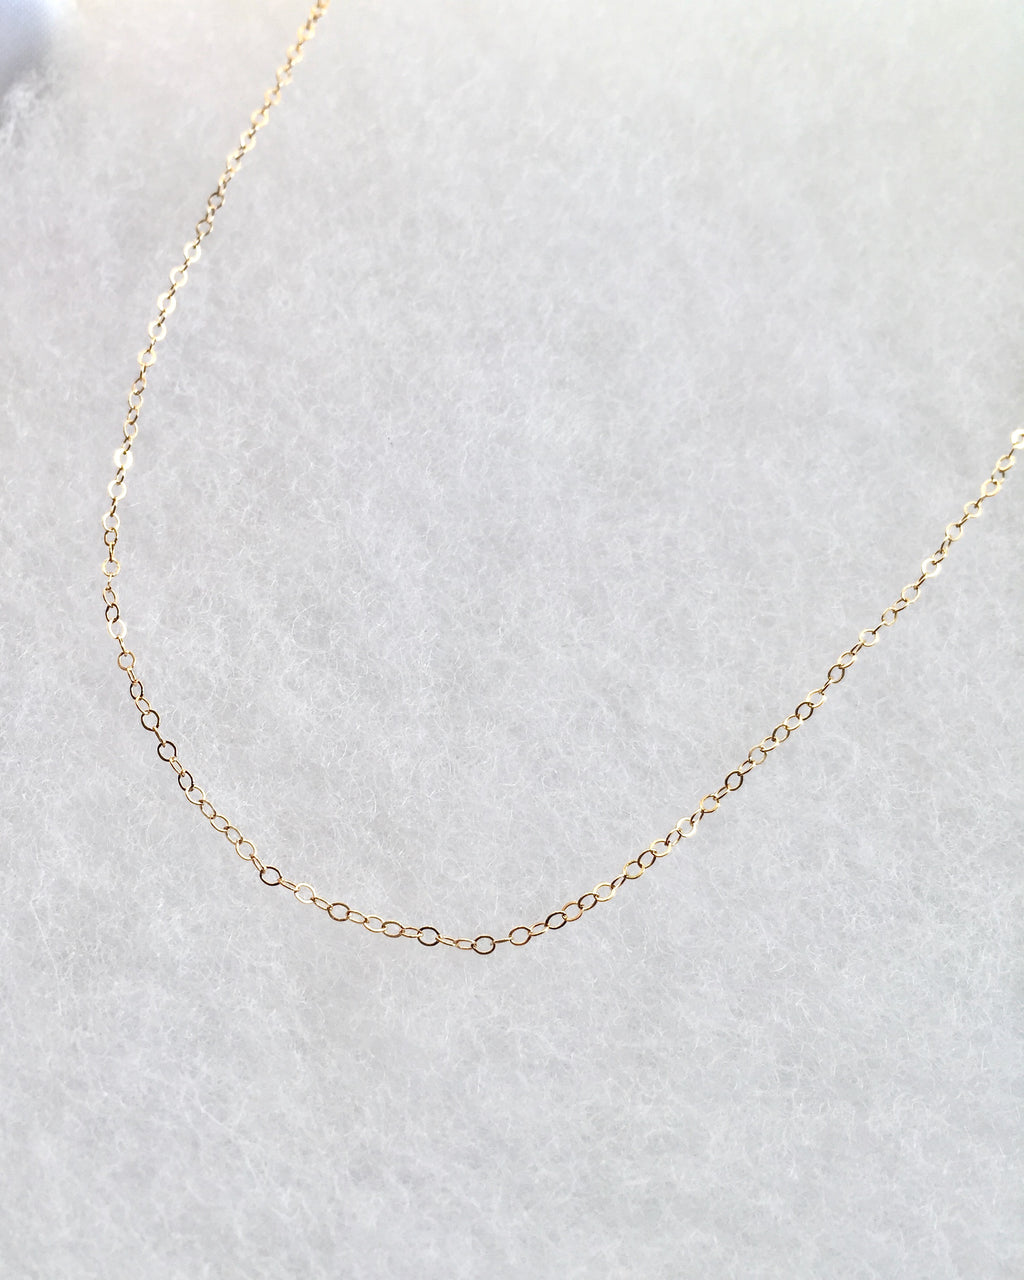 Simple Short Chain Necklace in Gold Filled or Sterling Silver | IB Jewelry